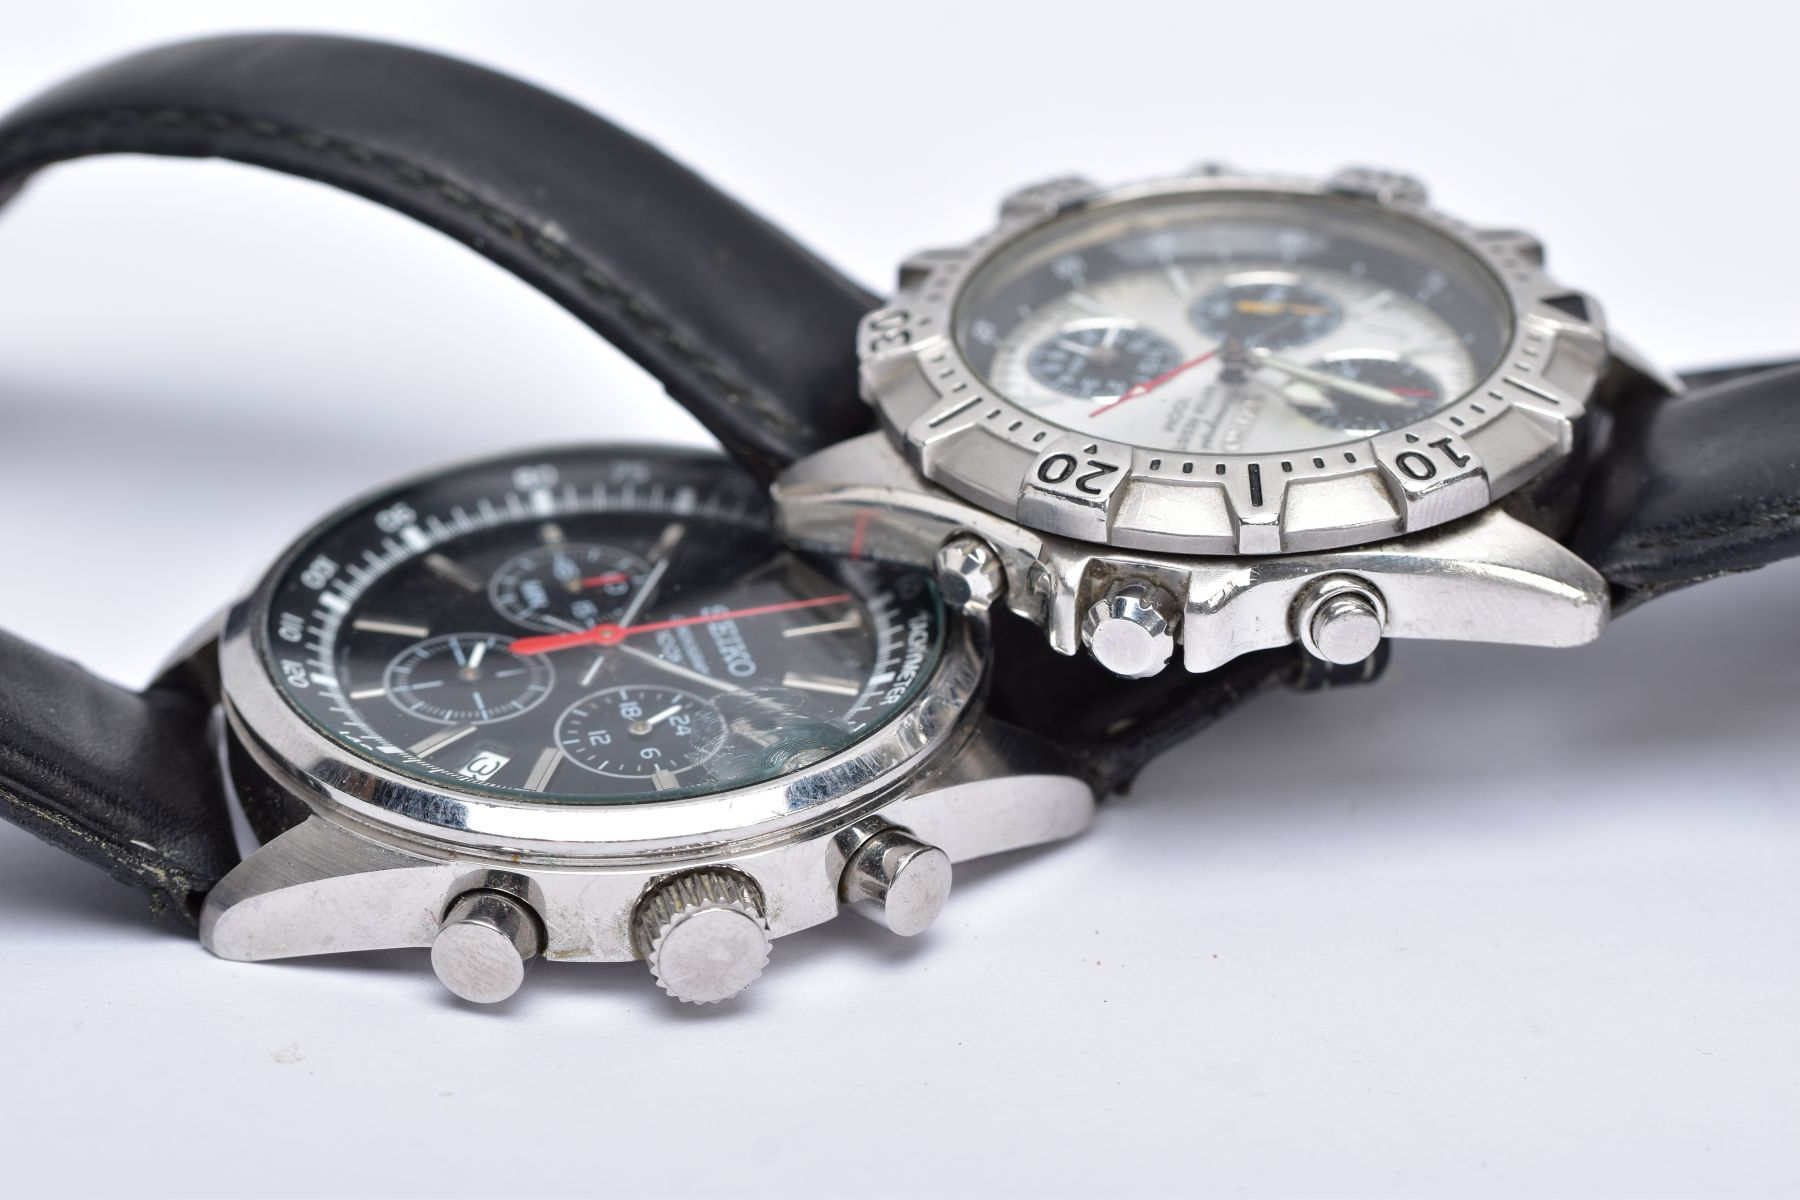 TWO GENTS 'SEIKO CHRONOGRAPH' WRISTWATCHES, the first with round black dial signed 'Seiko - Image 4 of 5